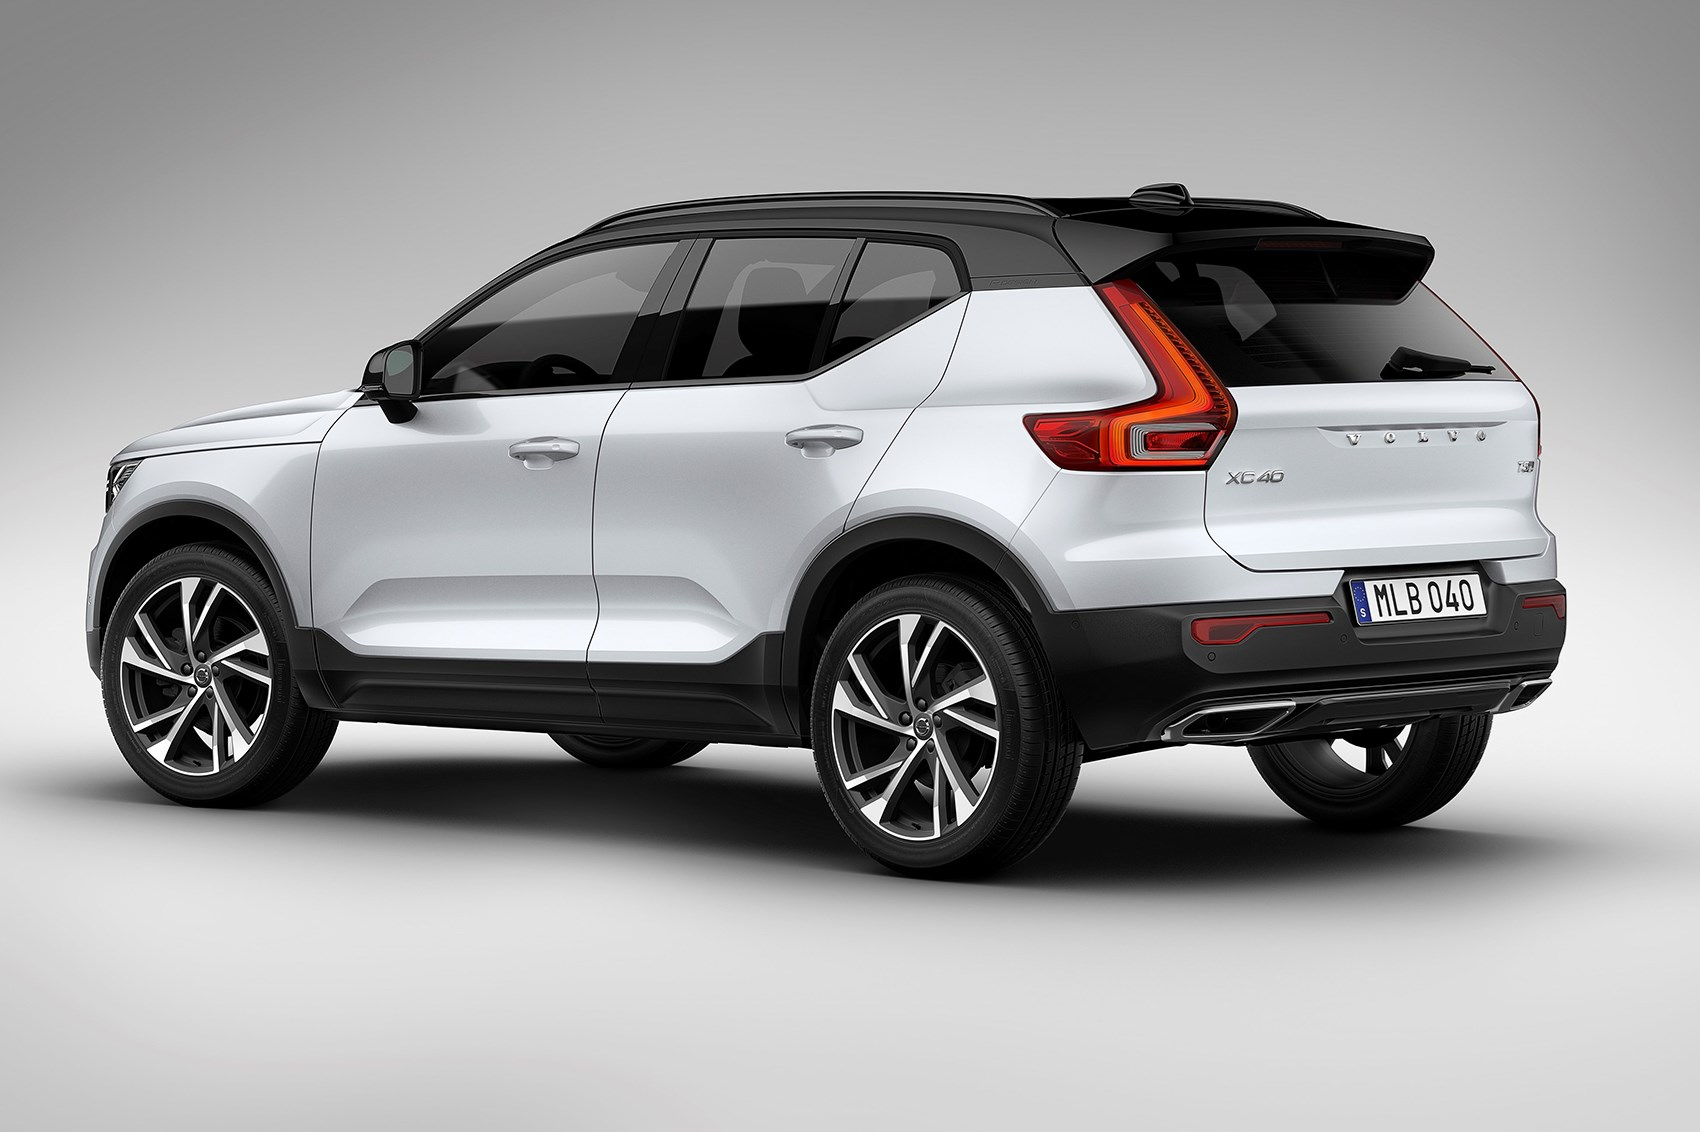 volvo xc40 revealed all new baby crossover is go for 2018. Black Bedroom Furniture Sets. Home Design Ideas